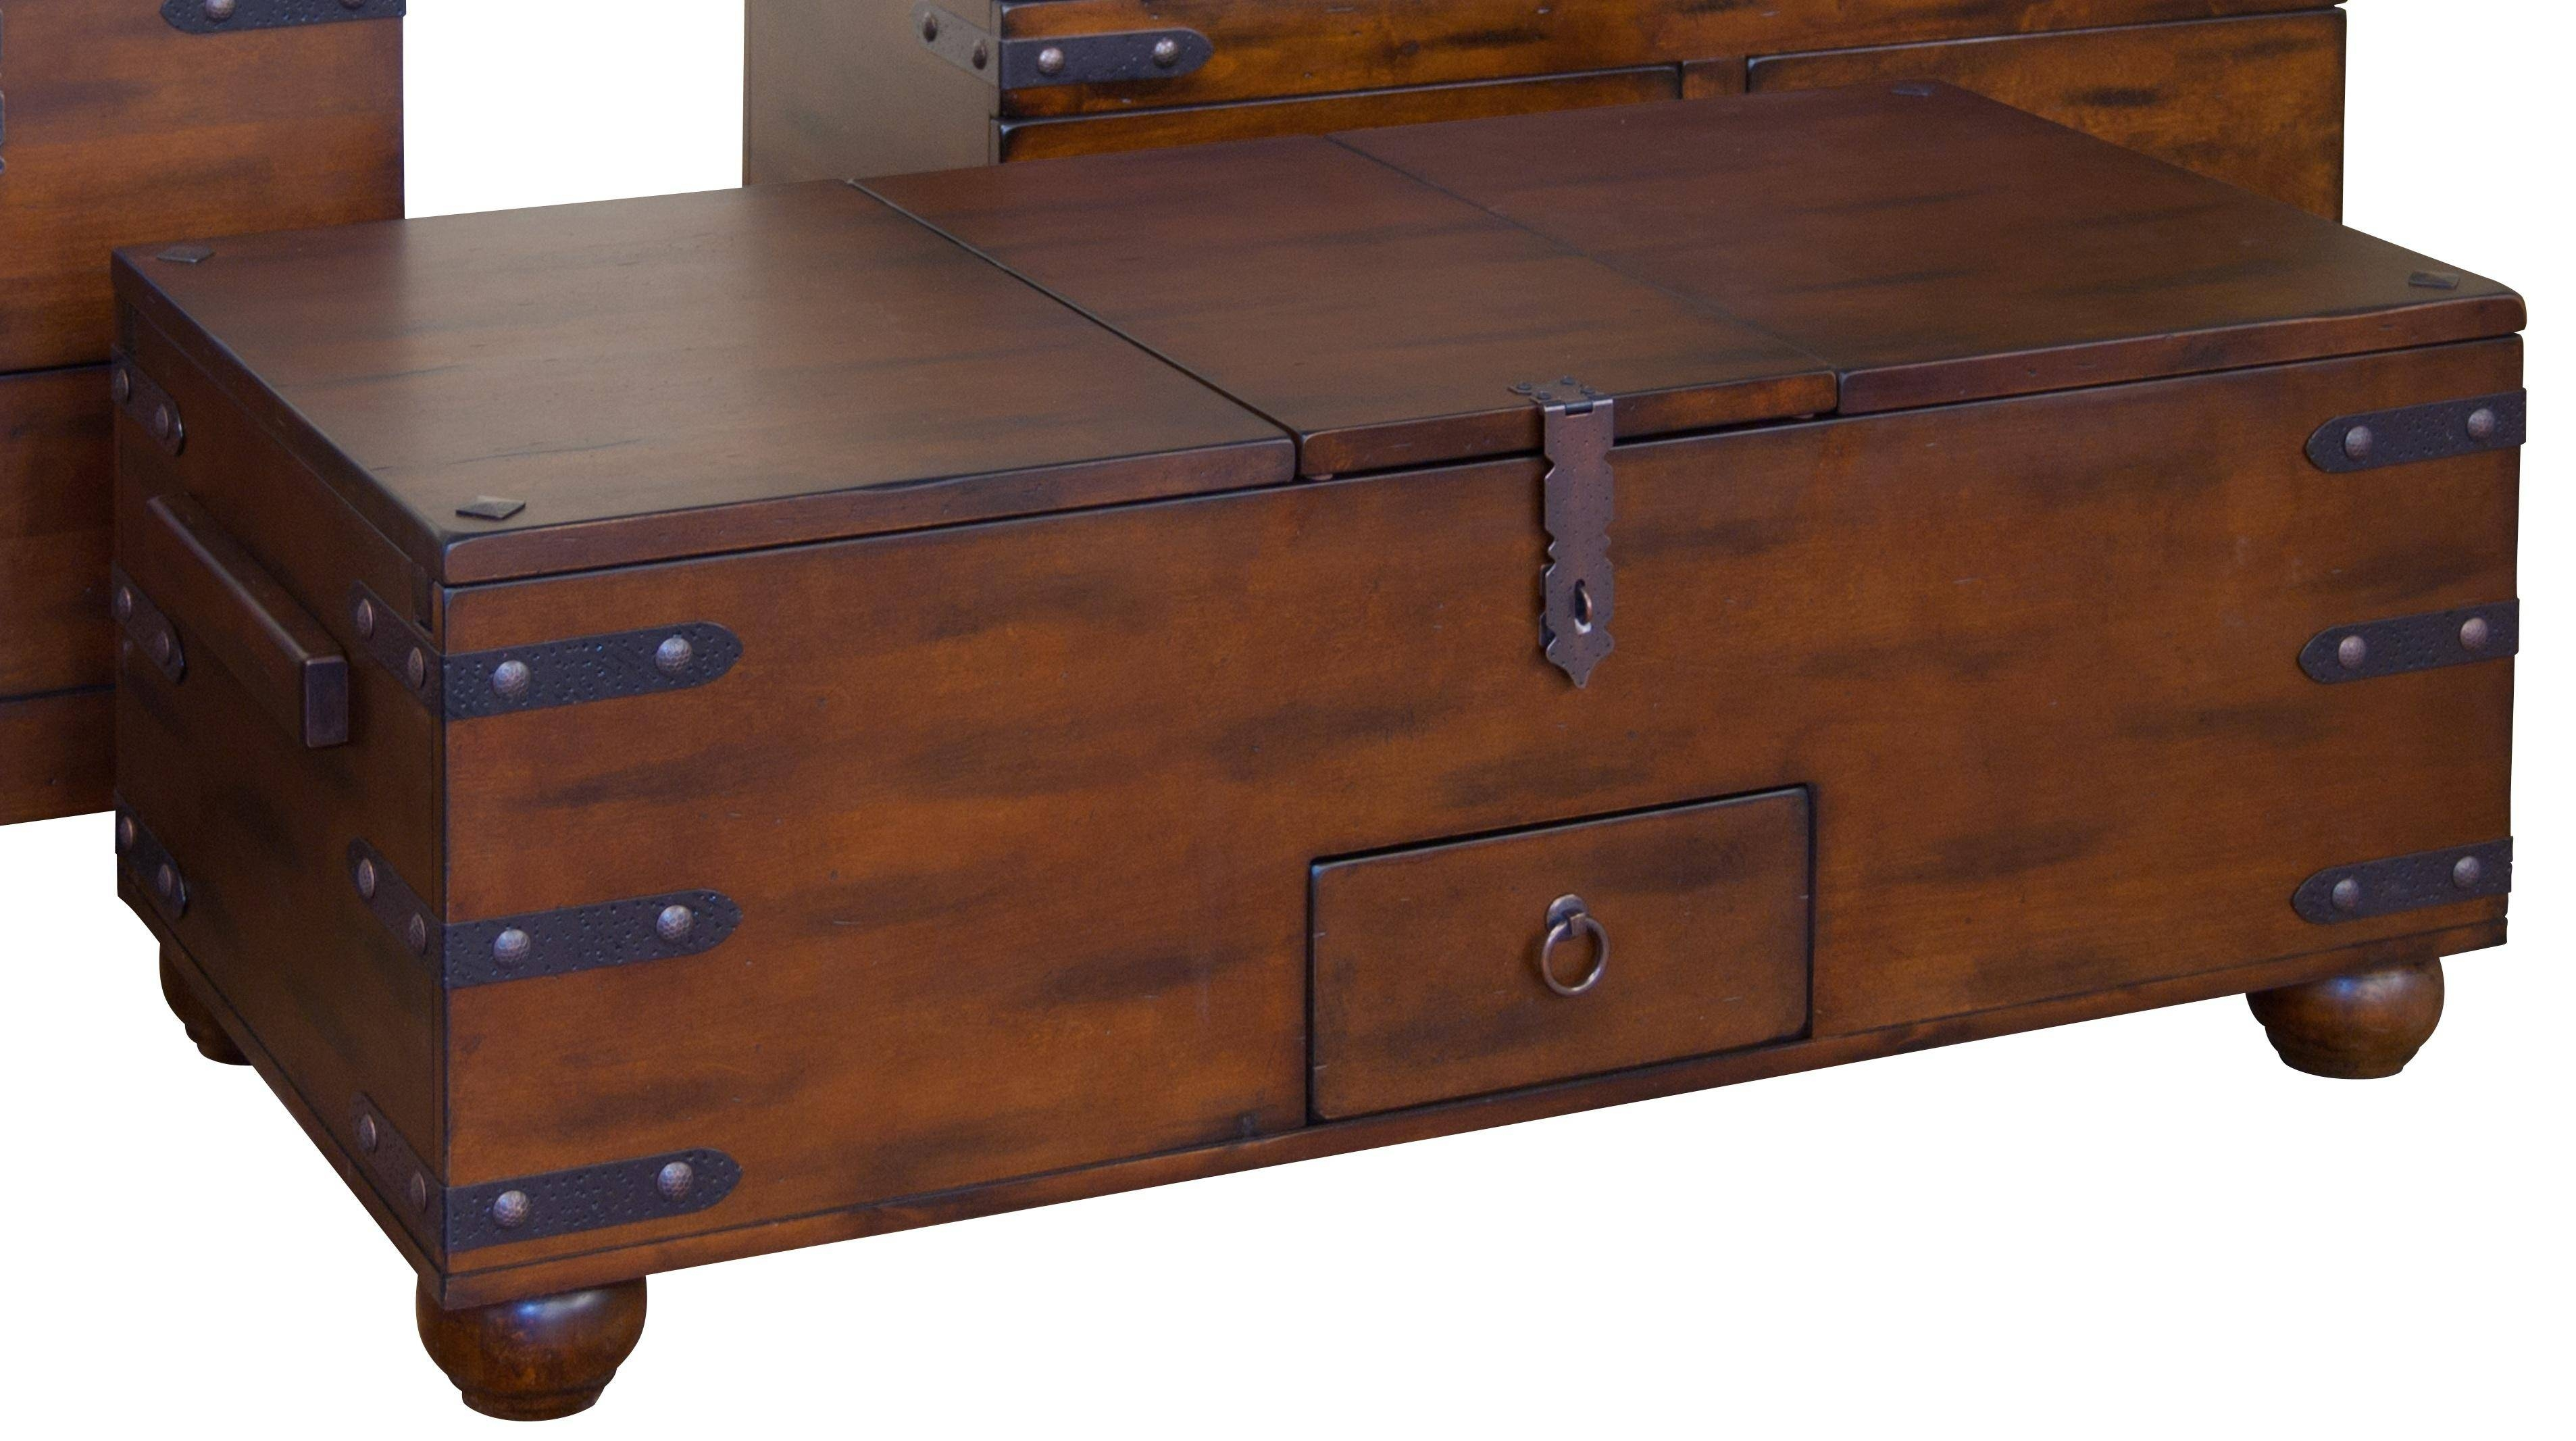 Coffee Table: Popular Storage Trunk Coffee Table Design Ideas With Dark Wood Chest Coffee Tables (View 8 of 30)